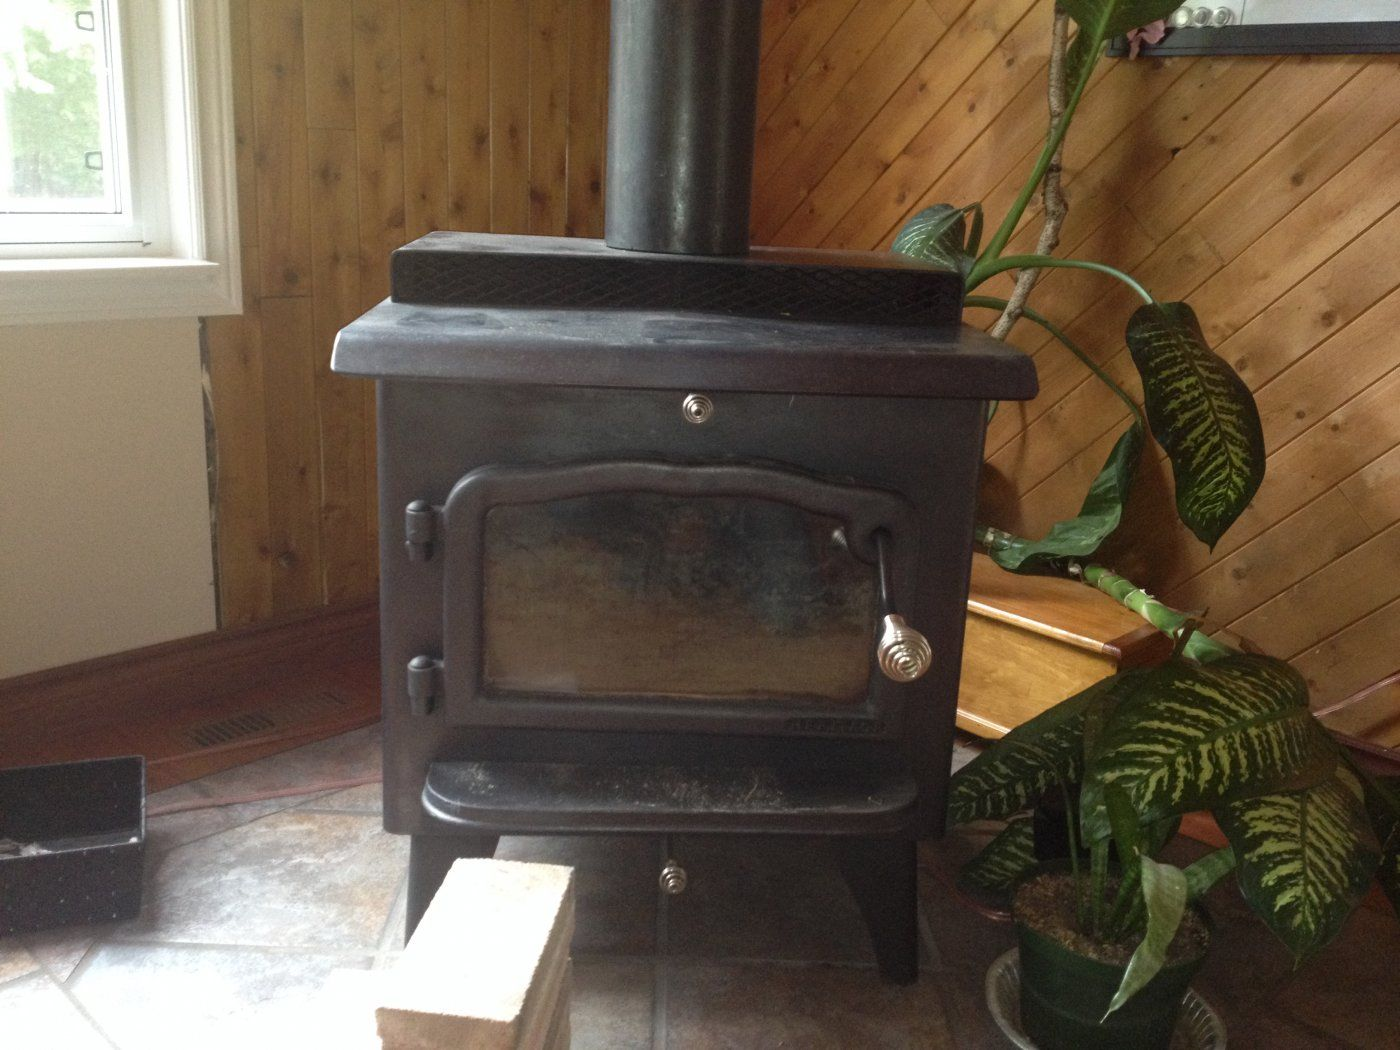 Heritage wood stove images home fixtures decoration ideas warnock hersey - Related To Warnock Hersey Wood Stove Models Warnock Hersey Wood Stove